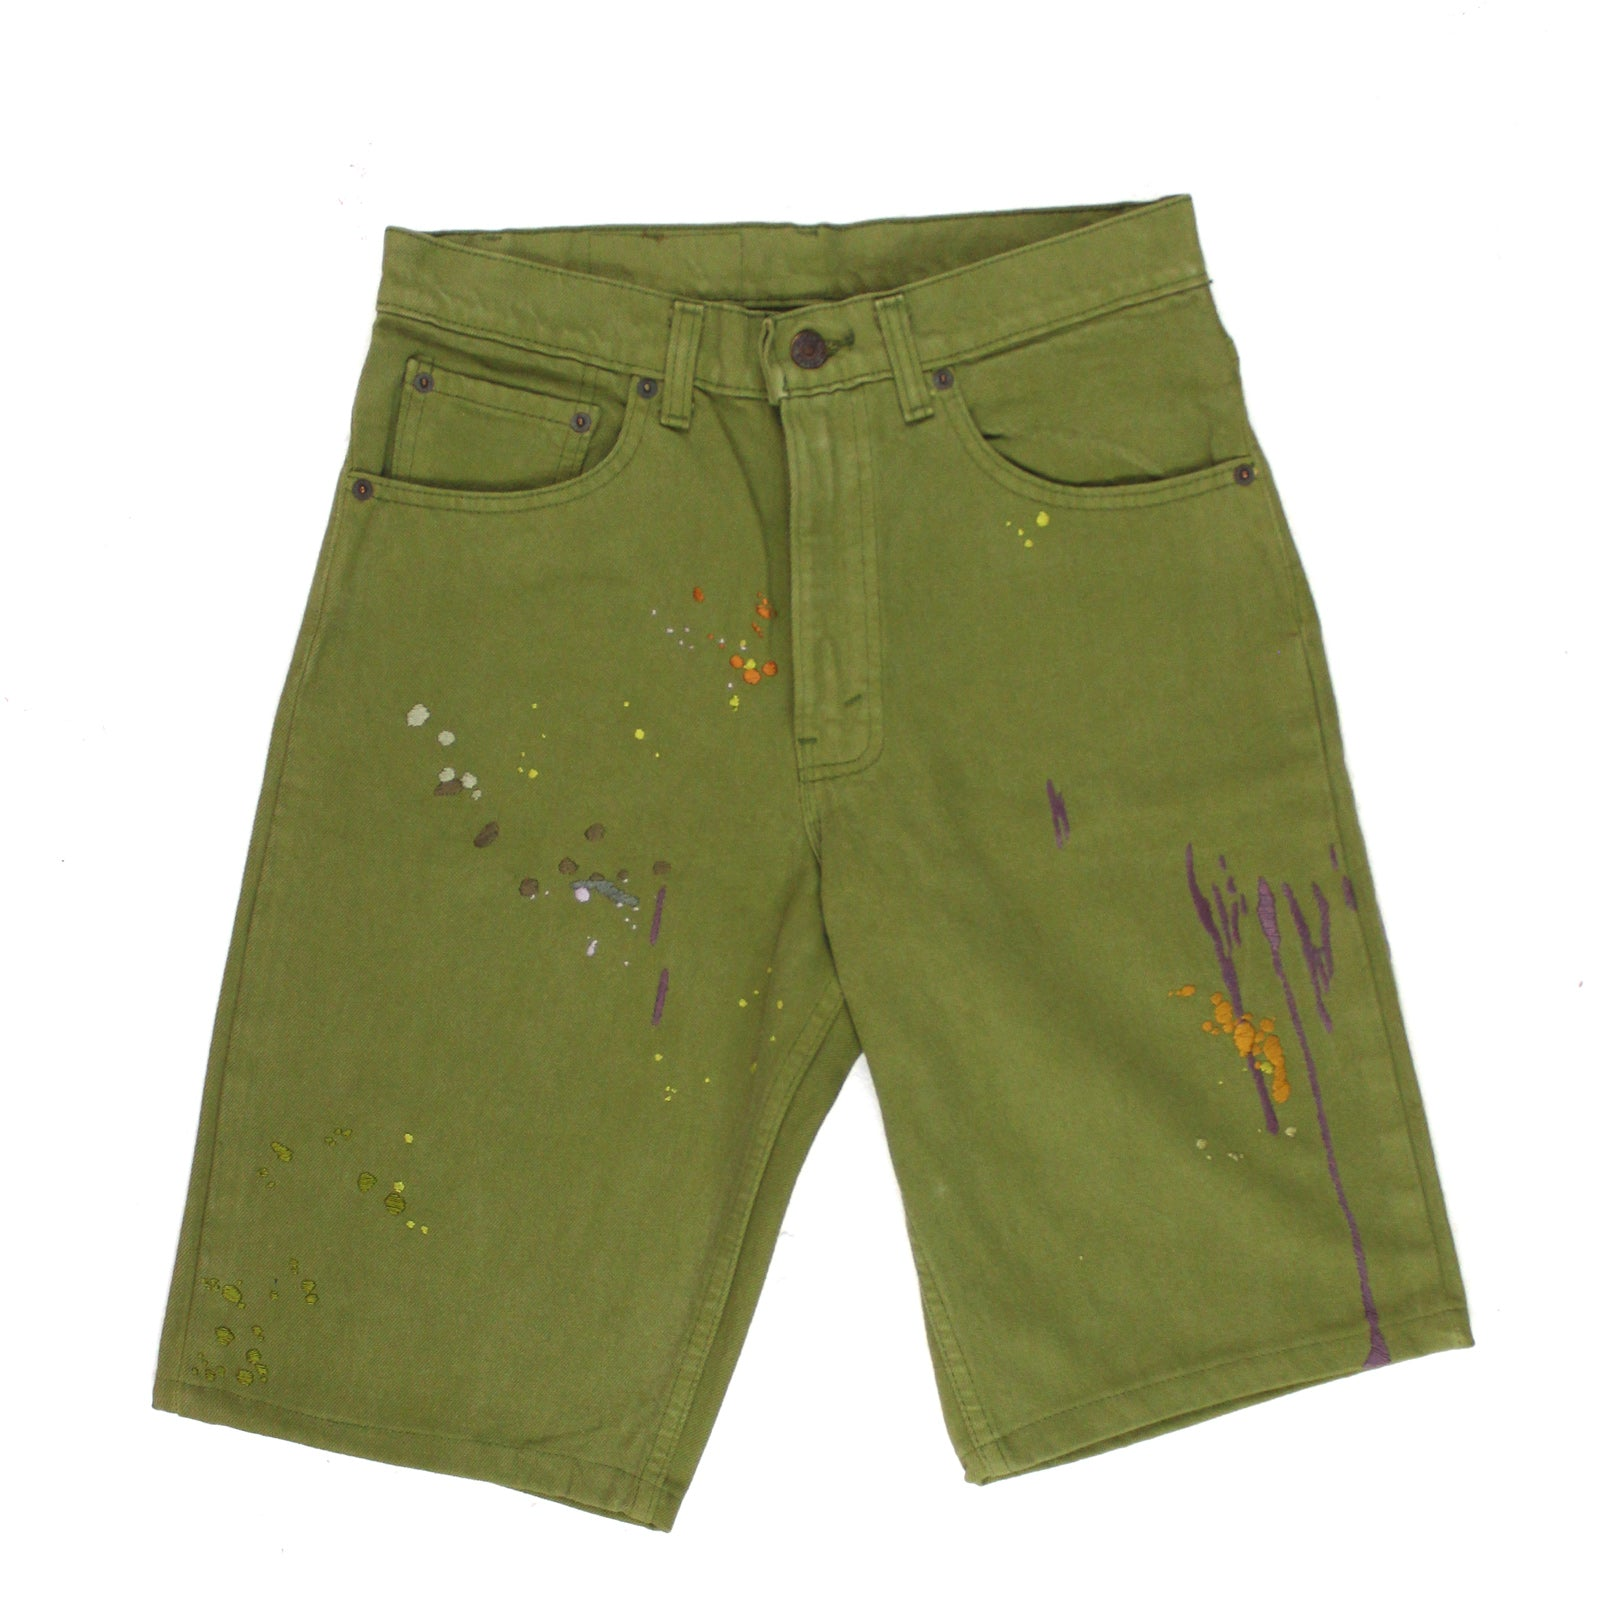 "BANDULU ""OLIVE IN AUGUST"" VINTAGE LEVI'S JORTS"